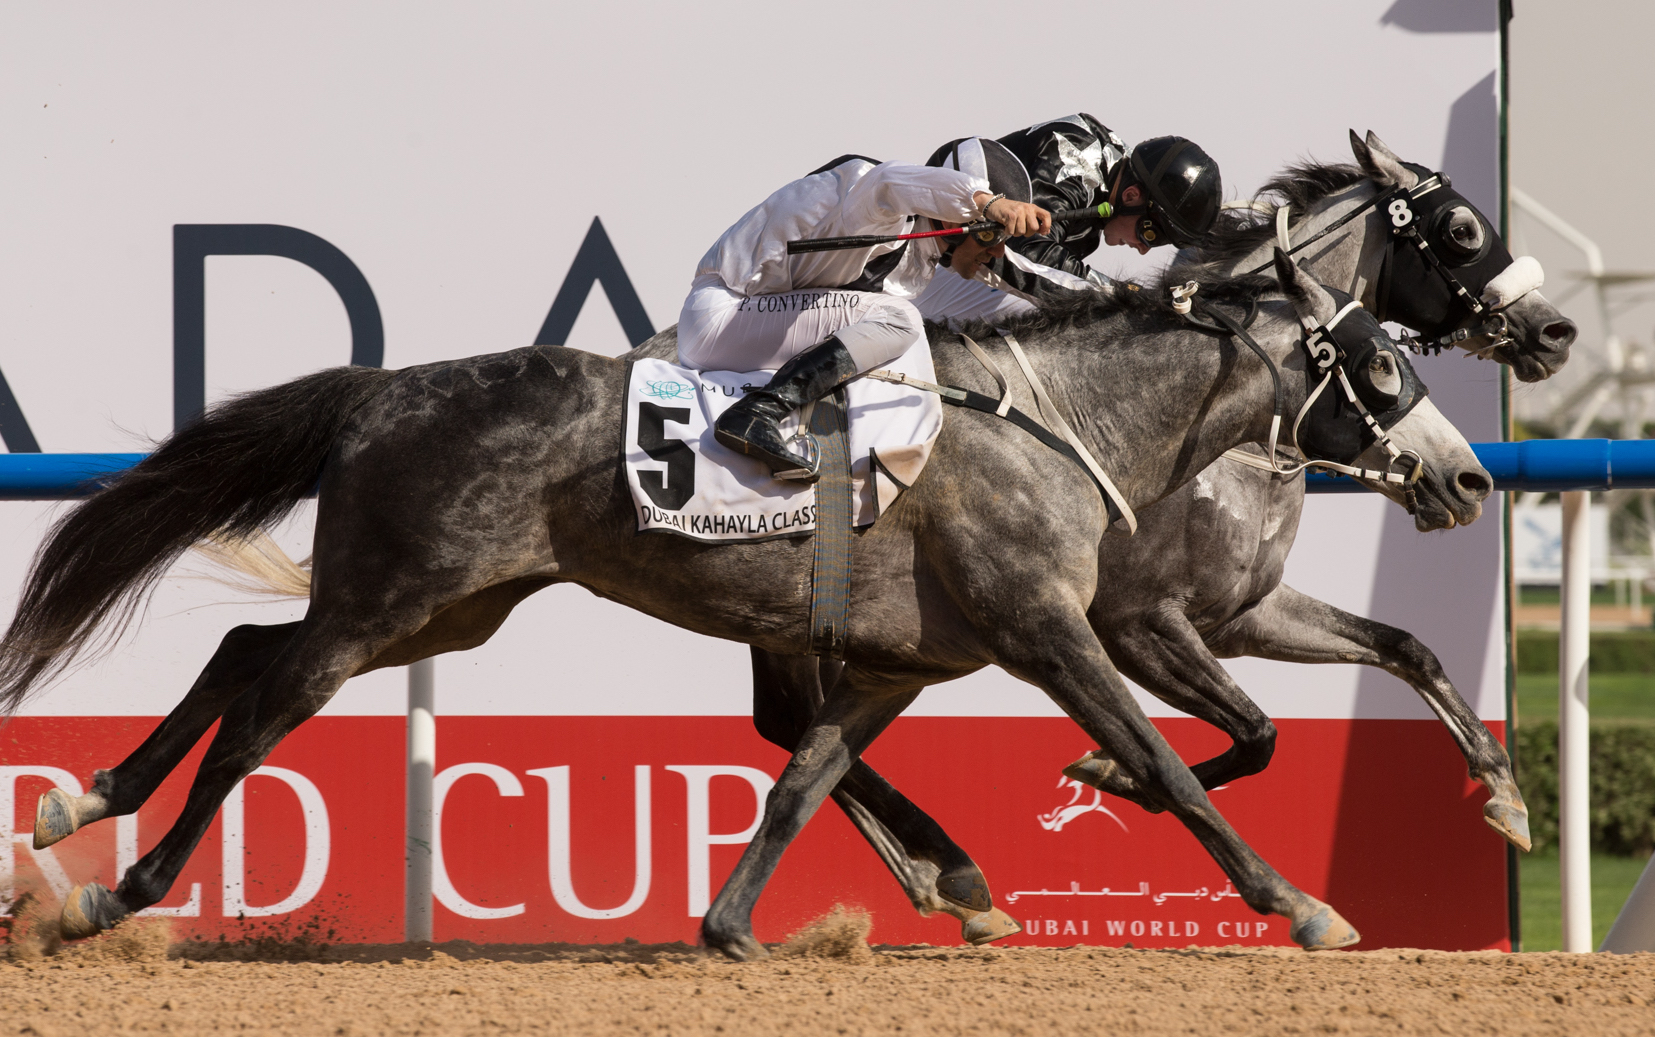 AF Maher (Tadhg O'Shea, far side) holds off Fazza Al Khaledia to win the Dubai Kahayla Classic by a nose in one of the most exciting finishes of Dubai World Cup day. Photo: Erika Rasmussen/Dubai Racing Club